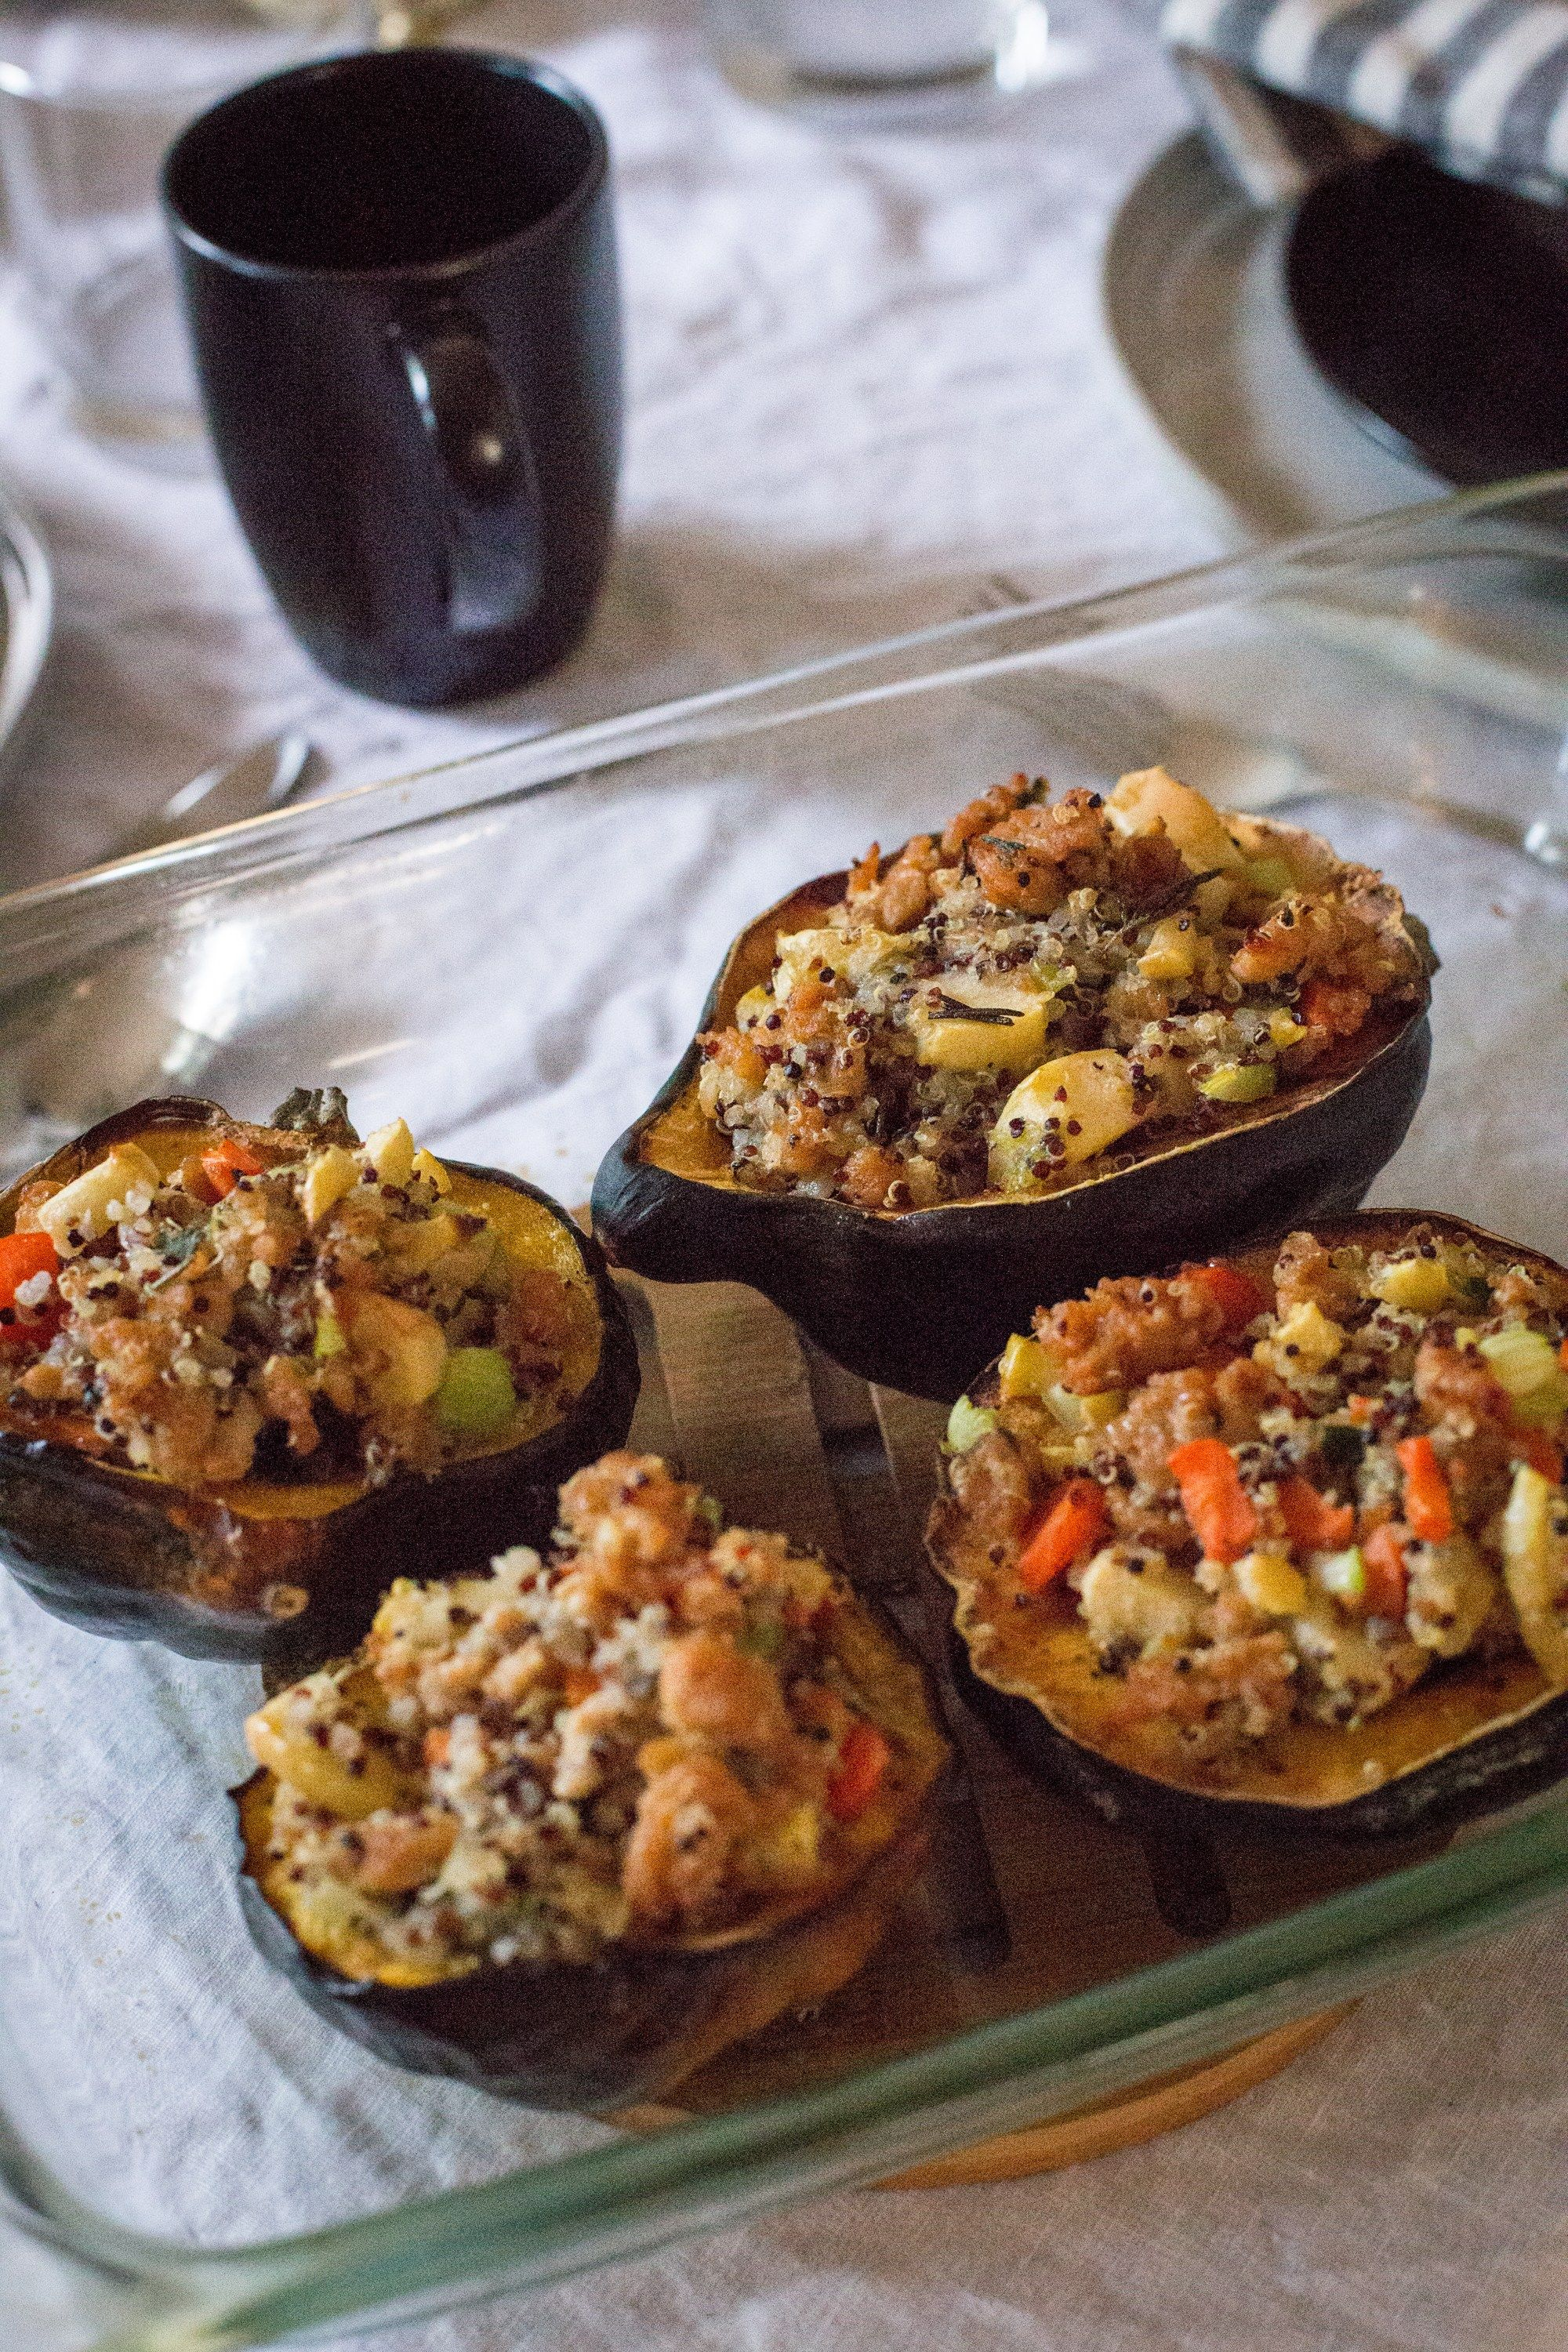 Stuffed Acorn Squash Acorn Squash Honeycrisp Apples Food